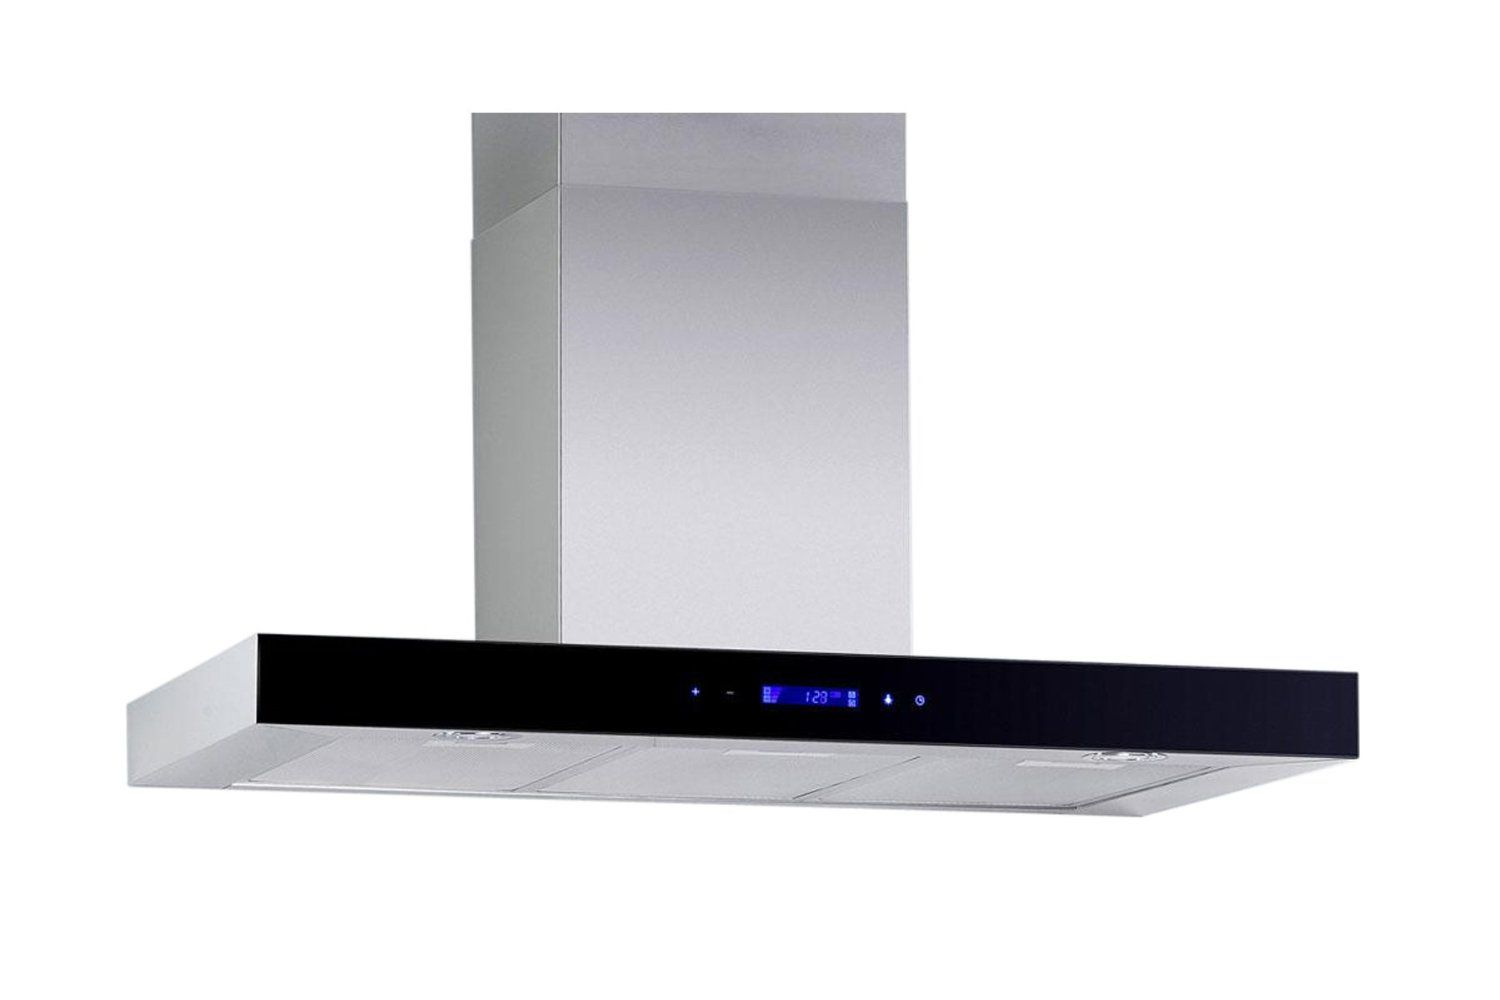 Amazon Com Blue Ocean 30 Rhke3 Stainless Steel Wall Mount Kitchen Range Hood Appliances Kitchen Range Hood Steel Wall Range Hood